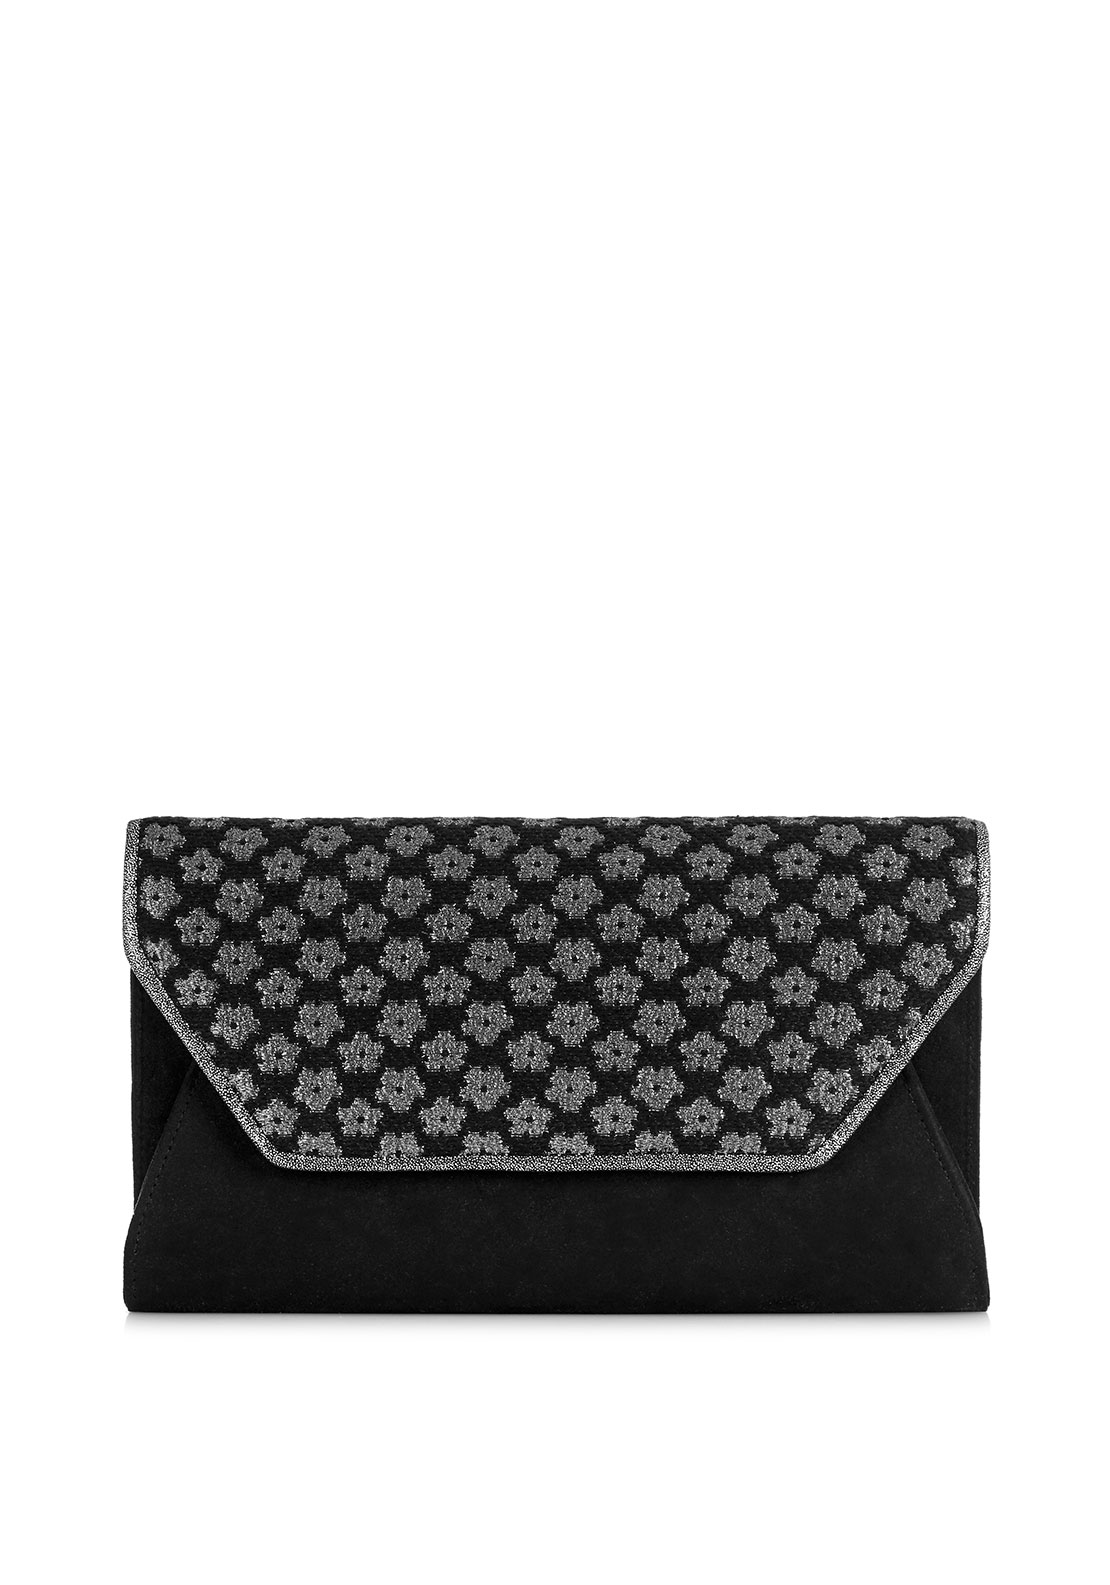 Ruby Shoo Lisbon Embroidered Clutch Bag, Black